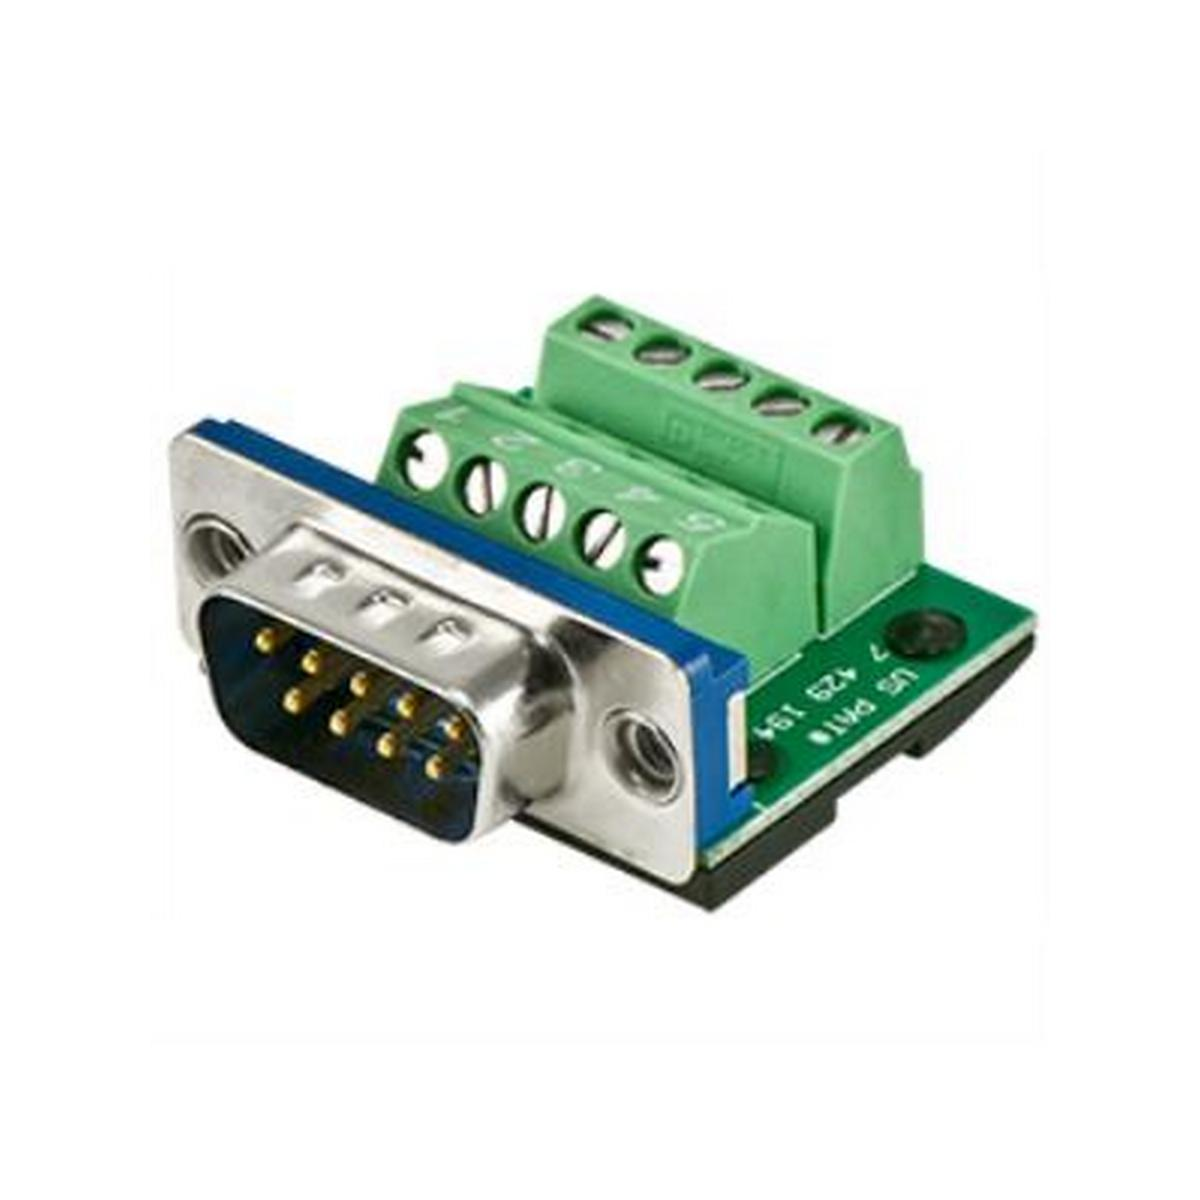 BTX  CD-MX9M BTX MaxBlox DB9 Male to Terminal Block Connector